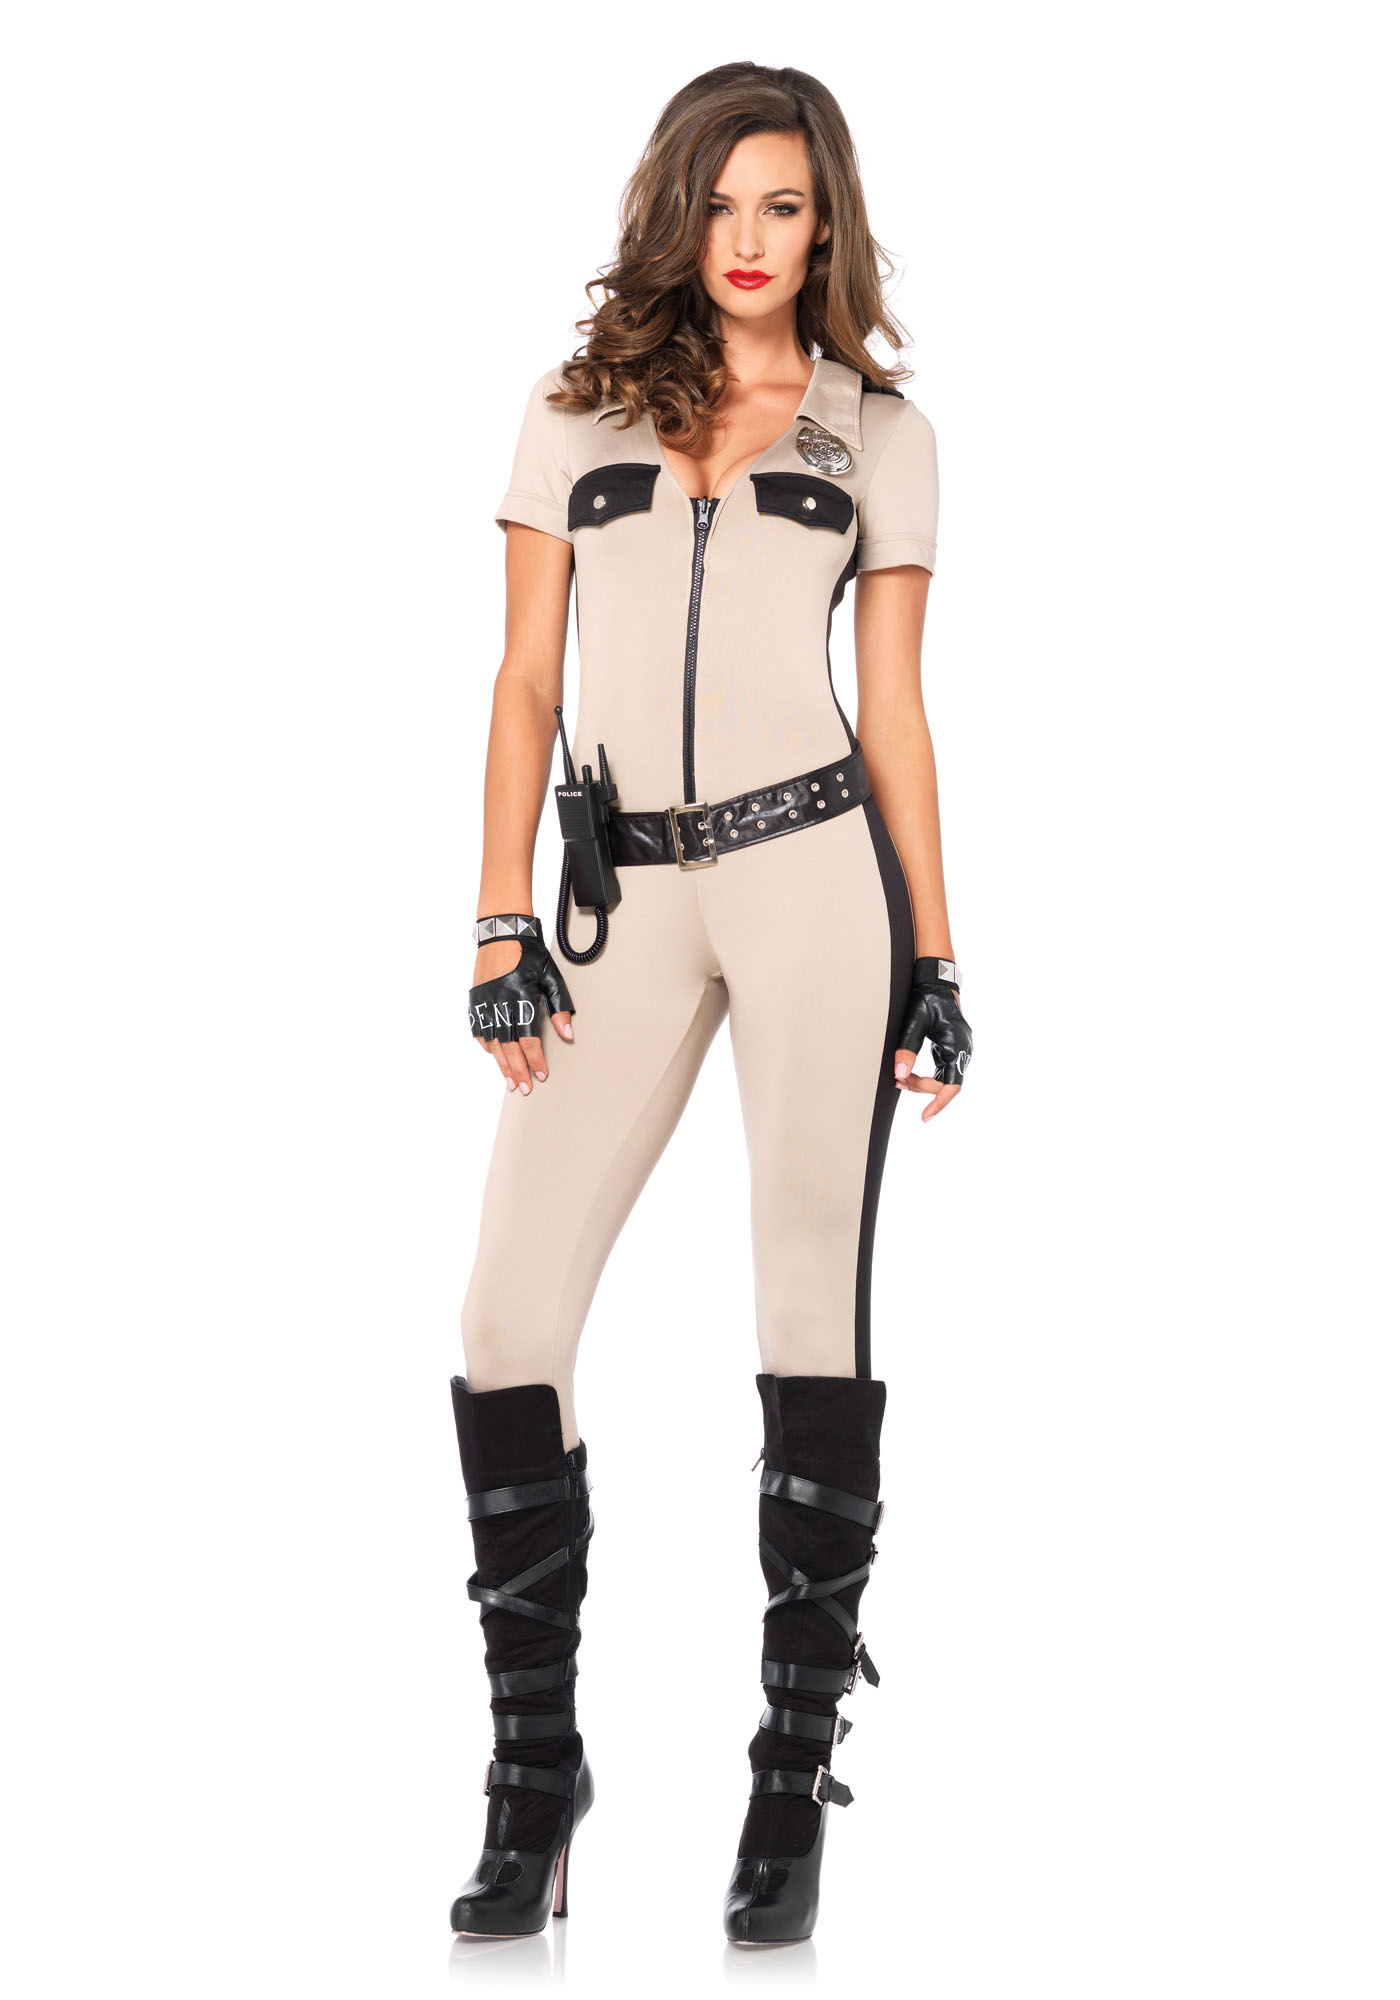 womens costumes amp accessories free express shipping in - HD1400×2000